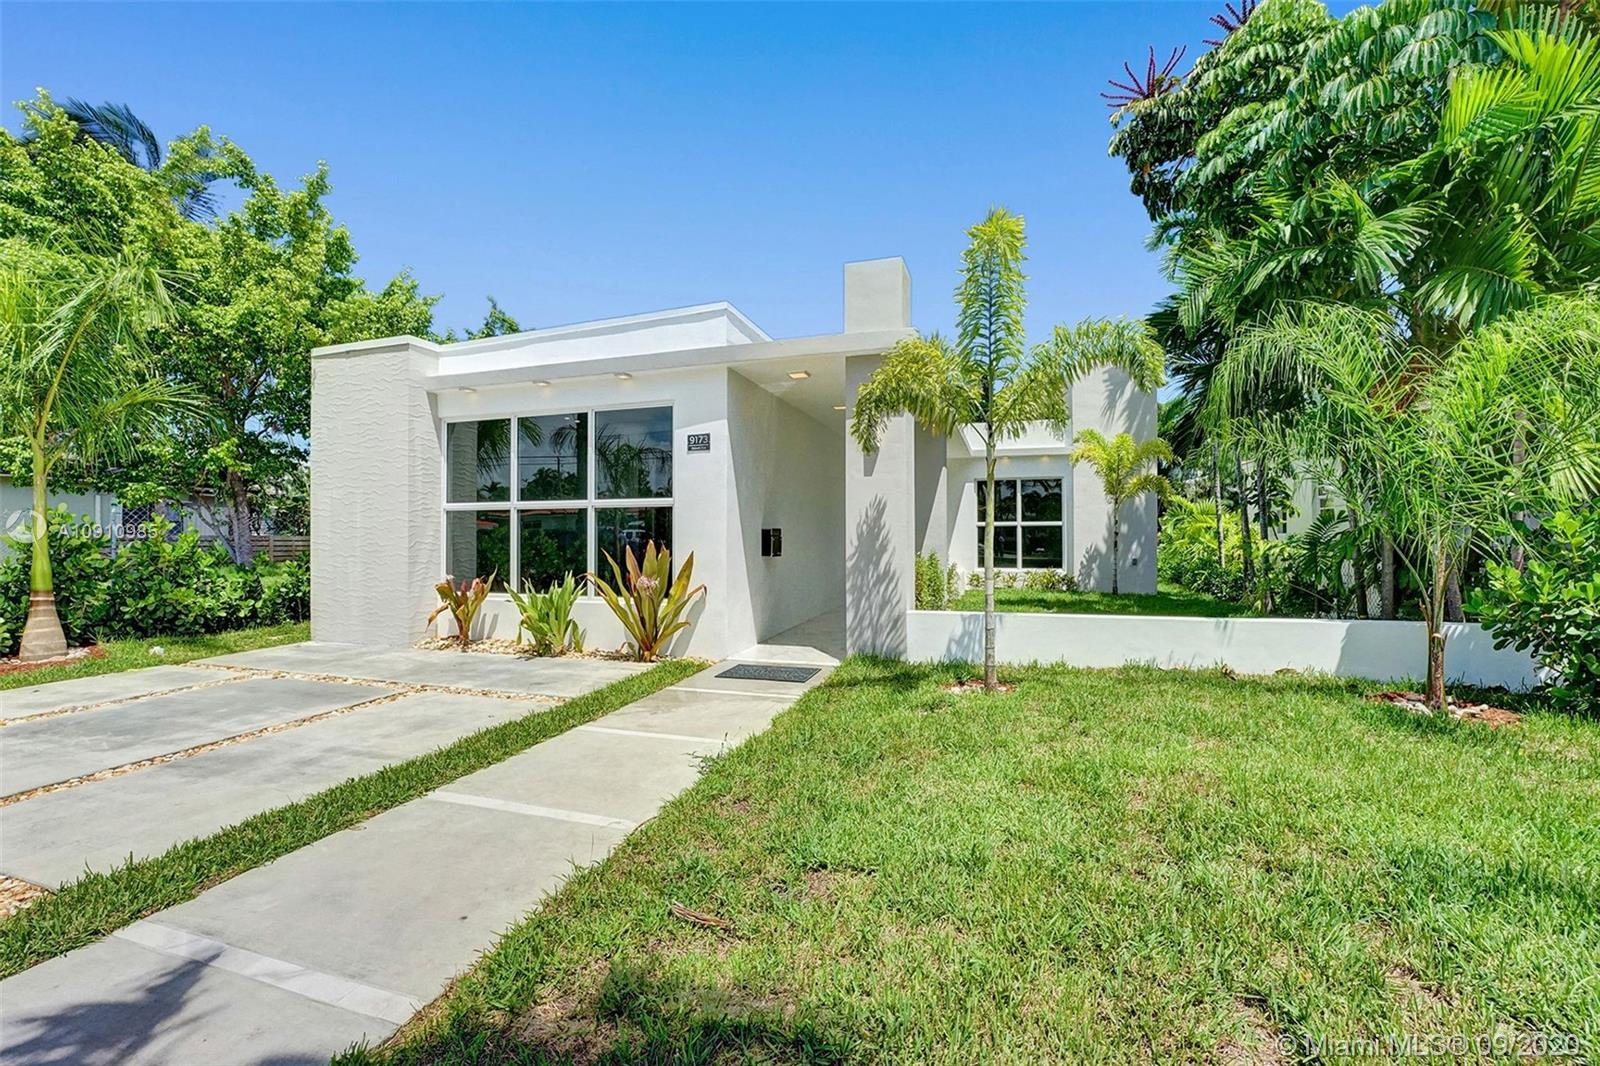 2100 sq. ft.!!!!! Beautifully remodeled house in Surfside!!! 3 bedrooms, 3 bathrooms, master with wa